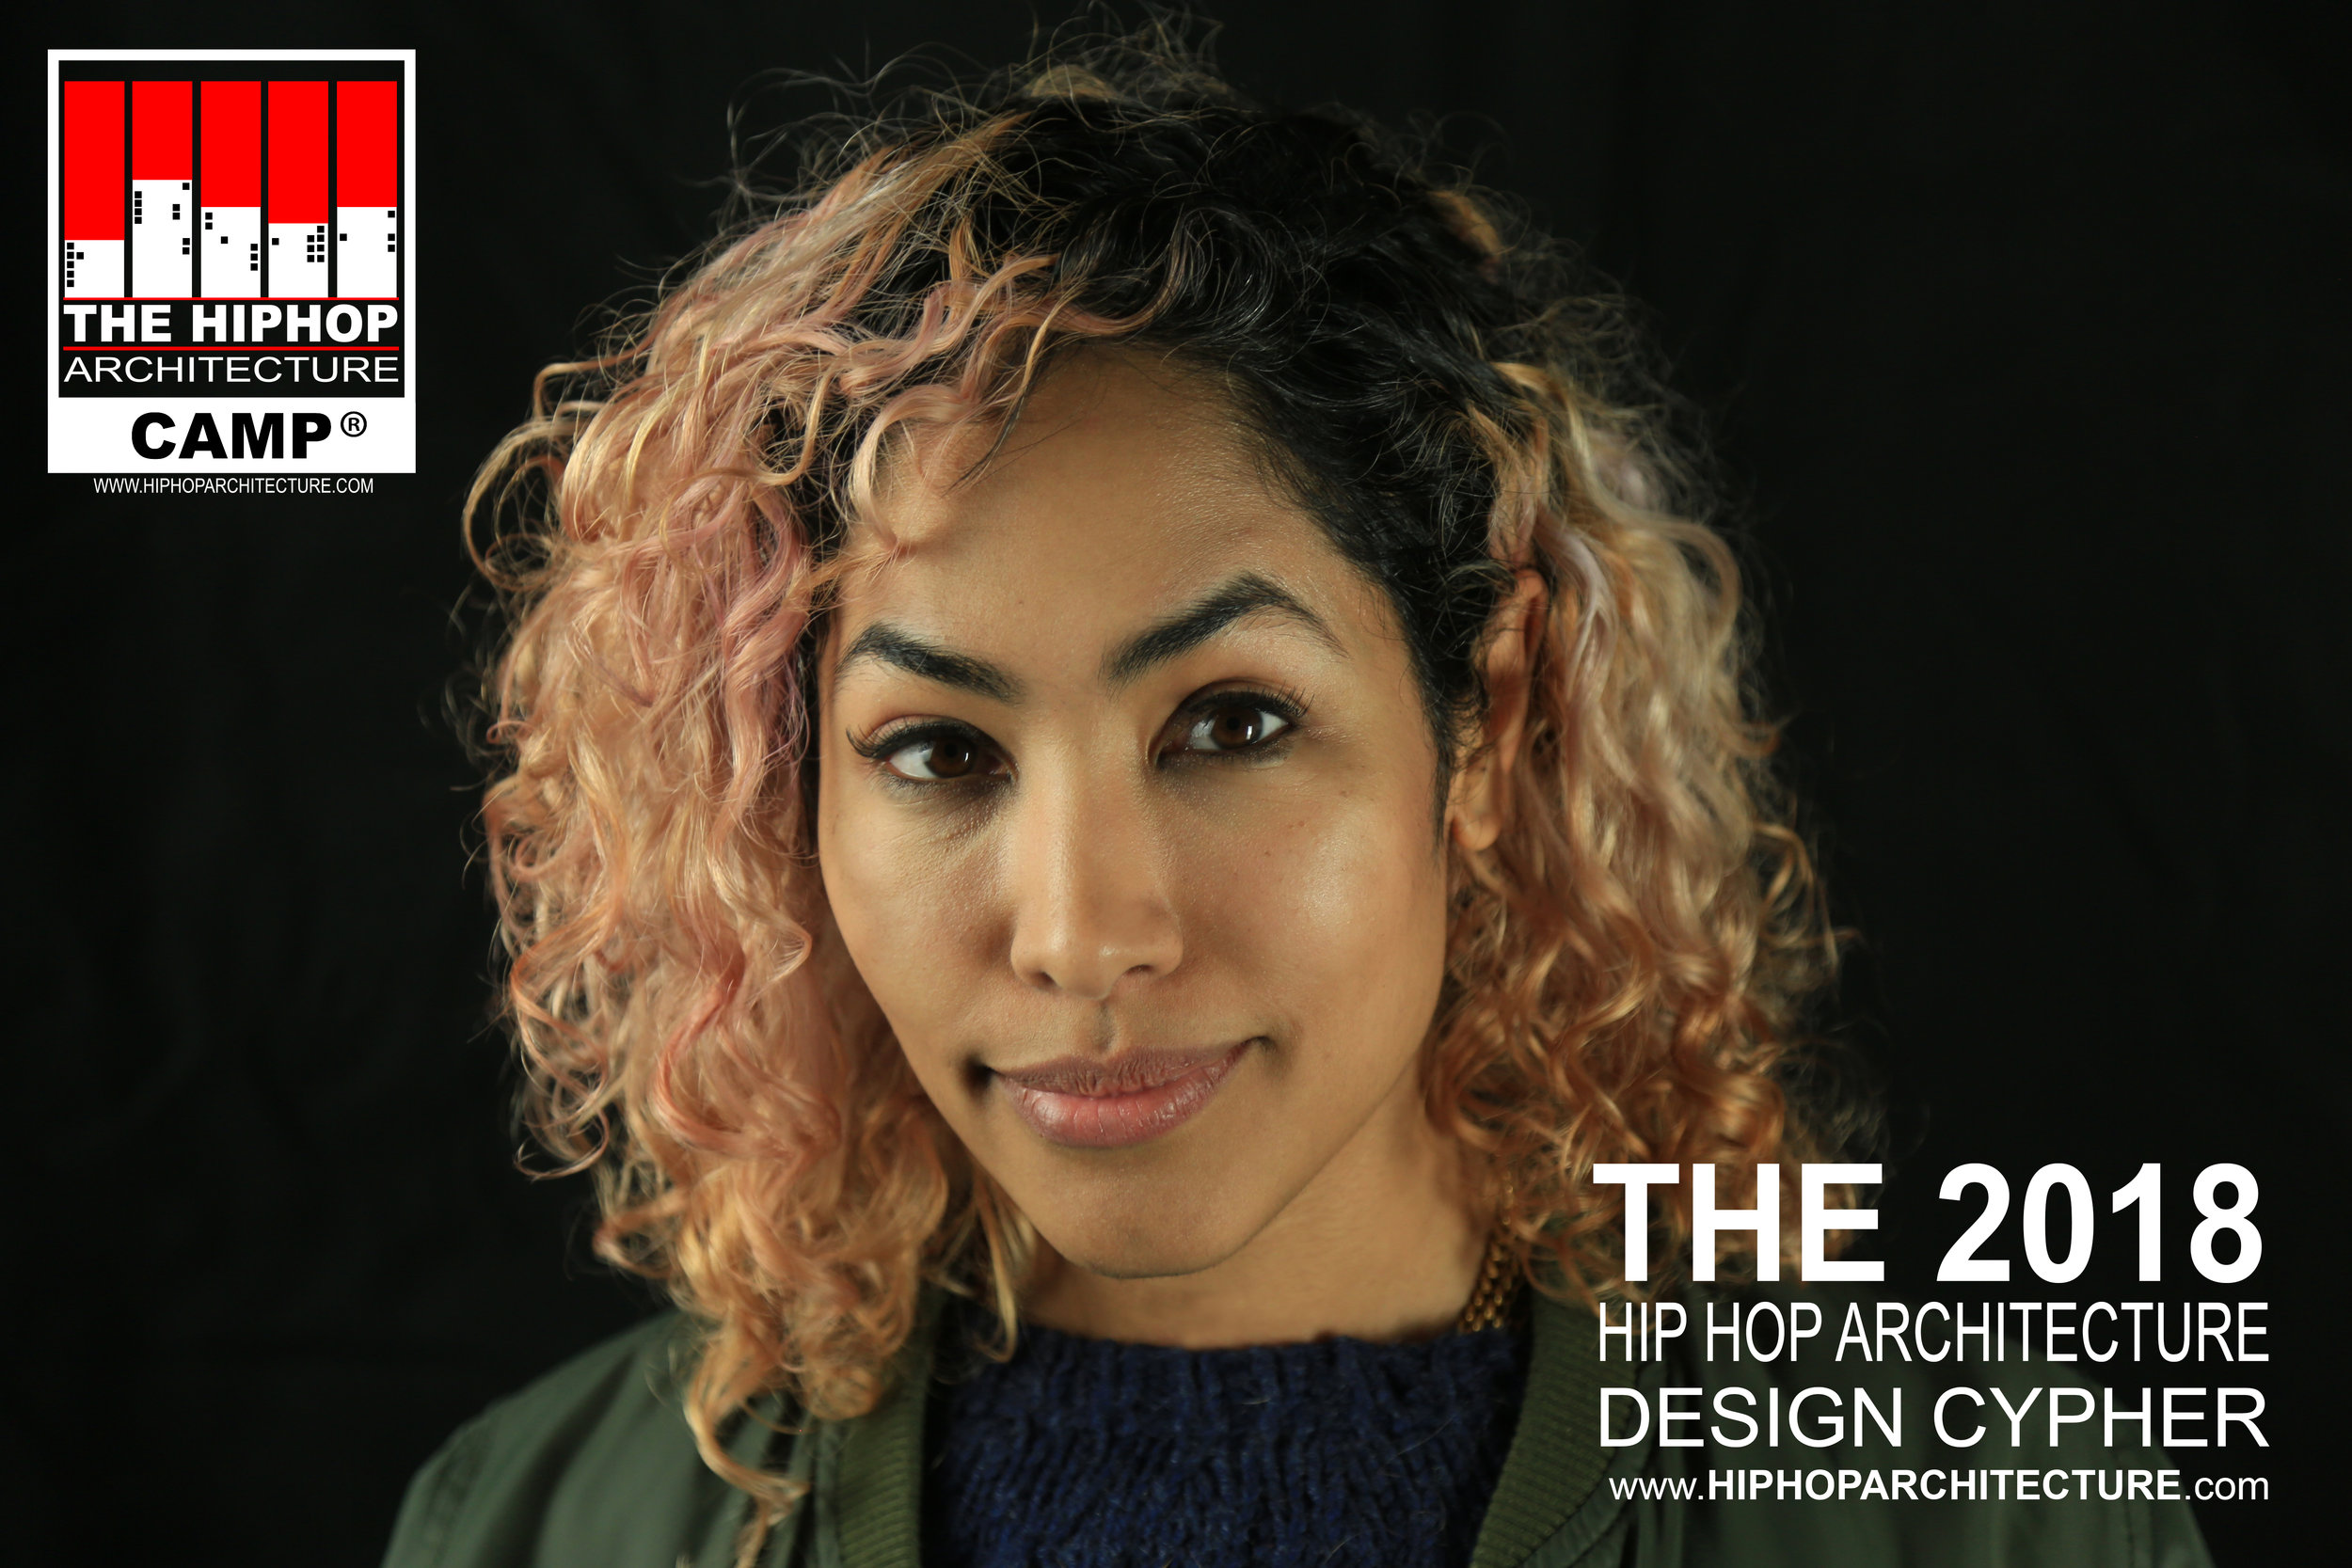 Nikki Jean at The Hip Hop Architecture Design Cypher. Photo by: Josh Berry